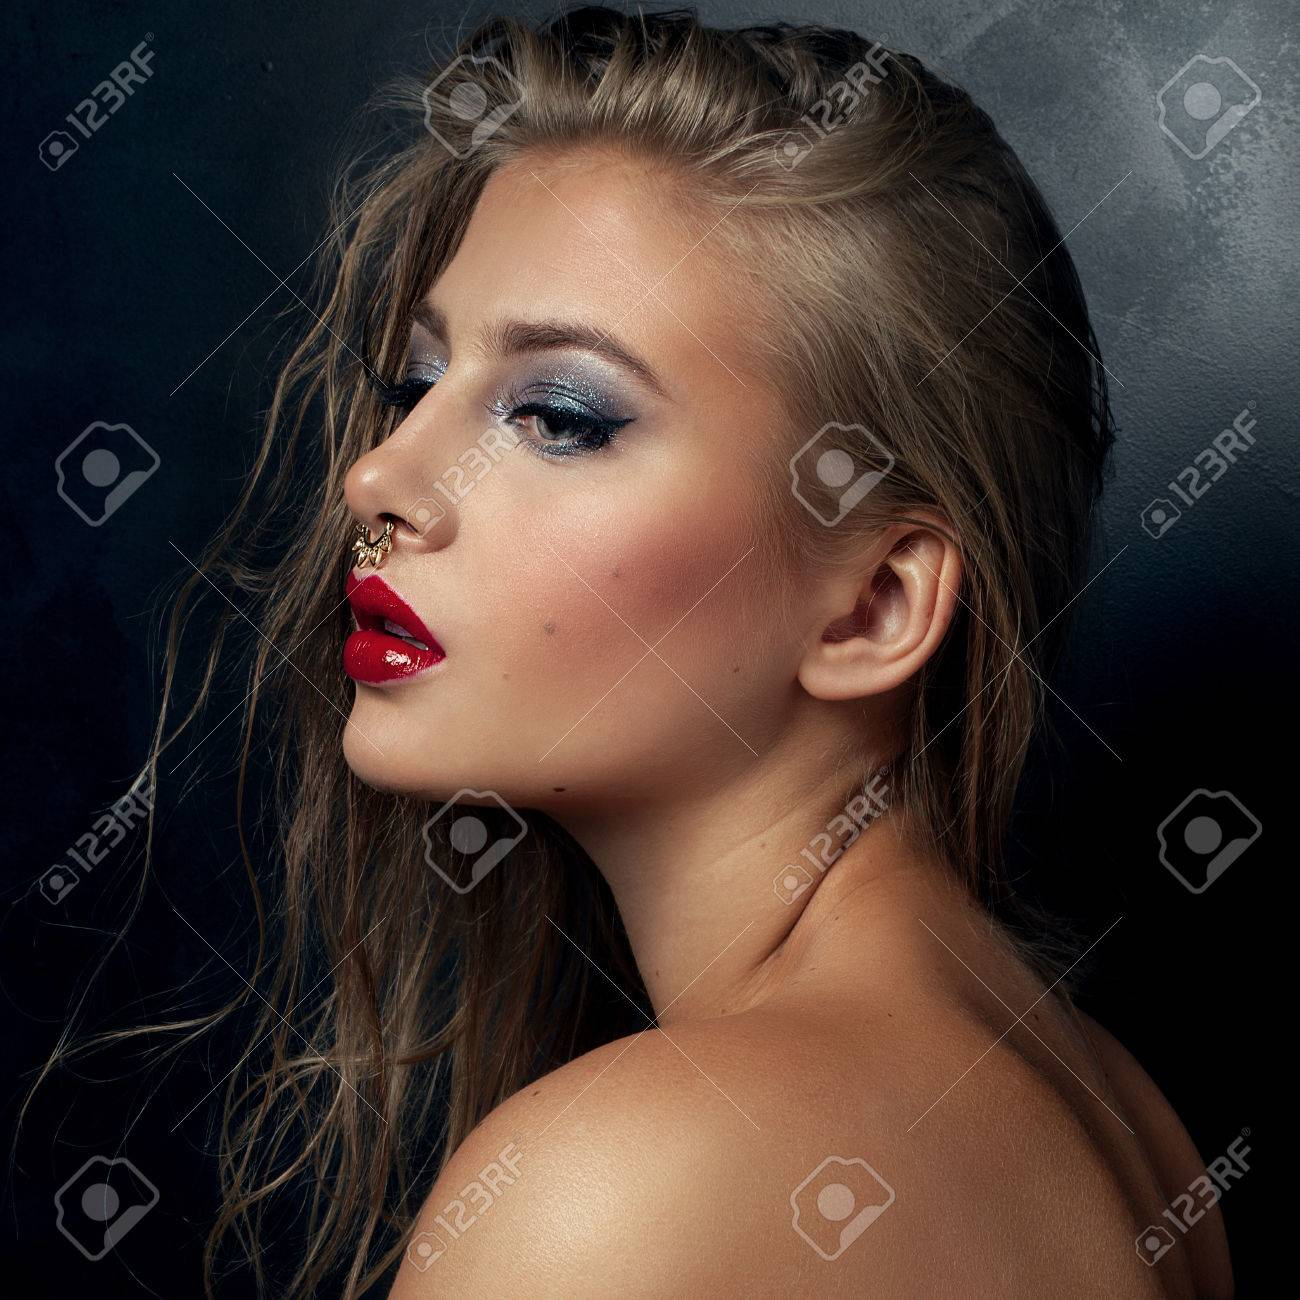 Beautiful Young Sexy Woman With Gold Nose Ring And Glamour Makeup Stock Photo Picture And Royalty Free Image Image 46403225